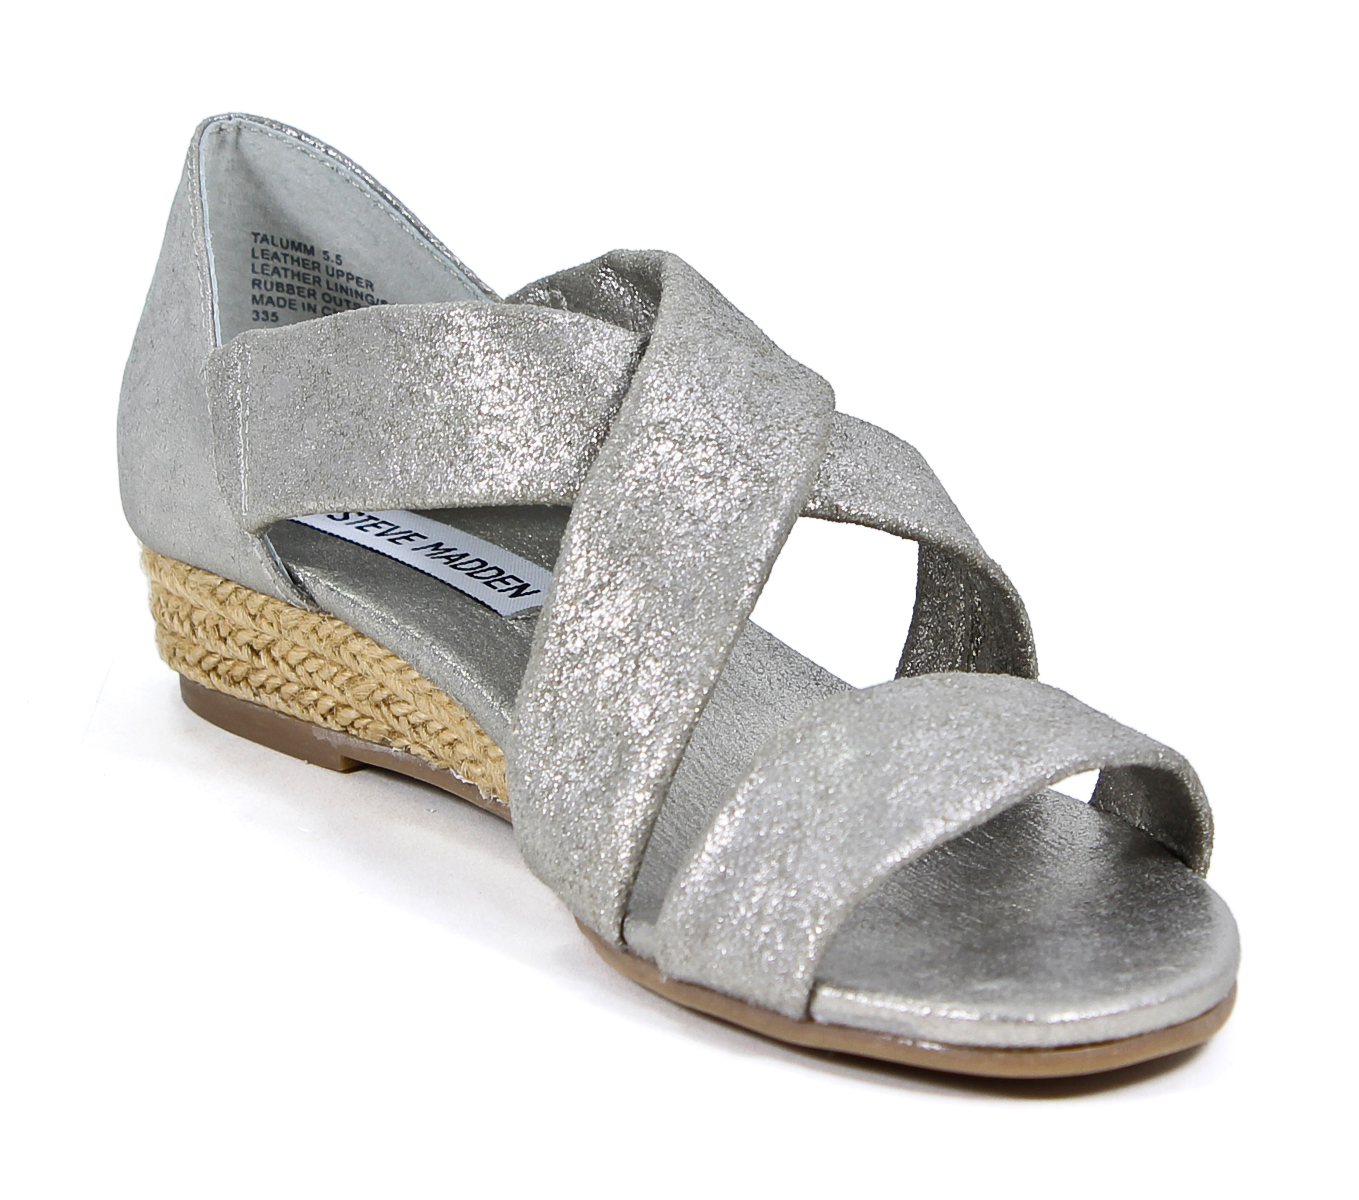 Steve Madden Talumm Leather Dusty Silver Wedge Sandals